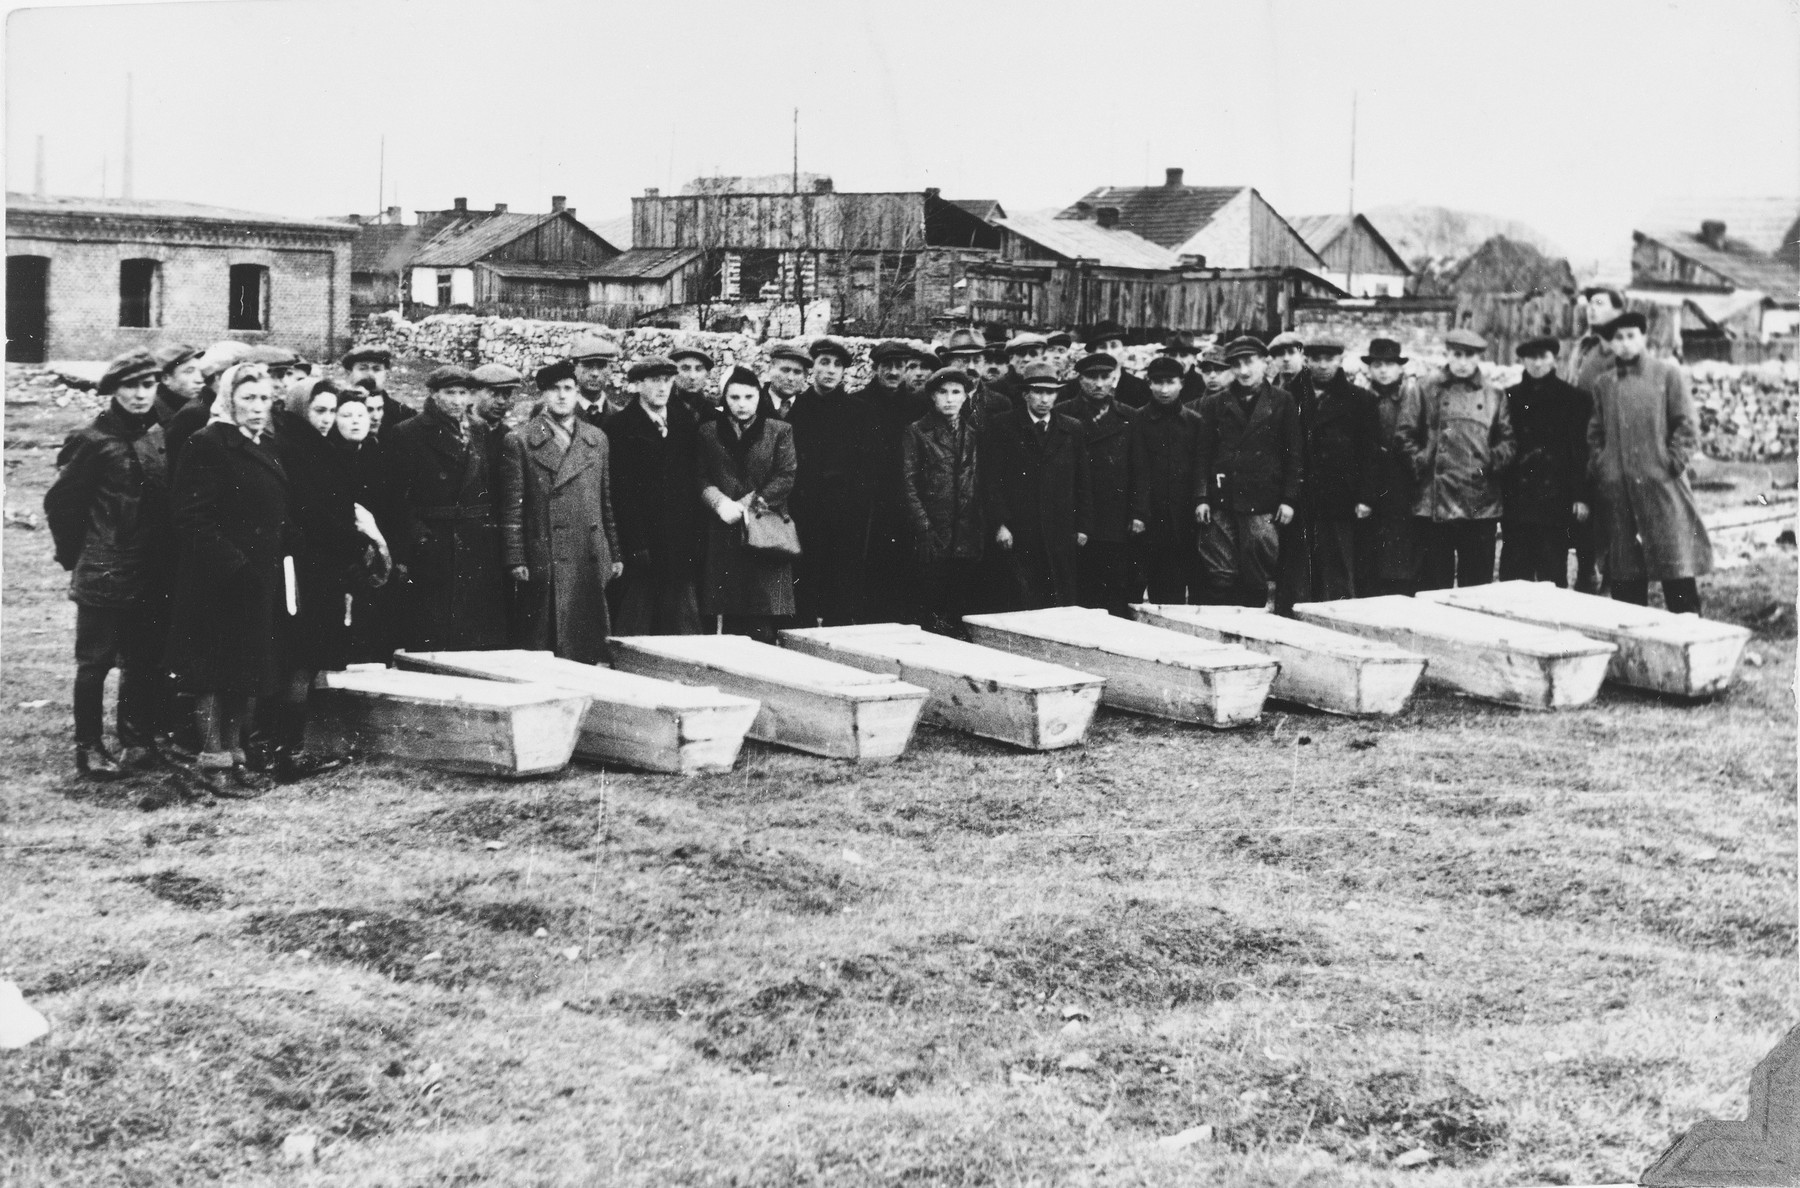 Mourners stand behind a row of coffins at the burial site in the Jewish cemetery for the victims of the Kielce pogrom.